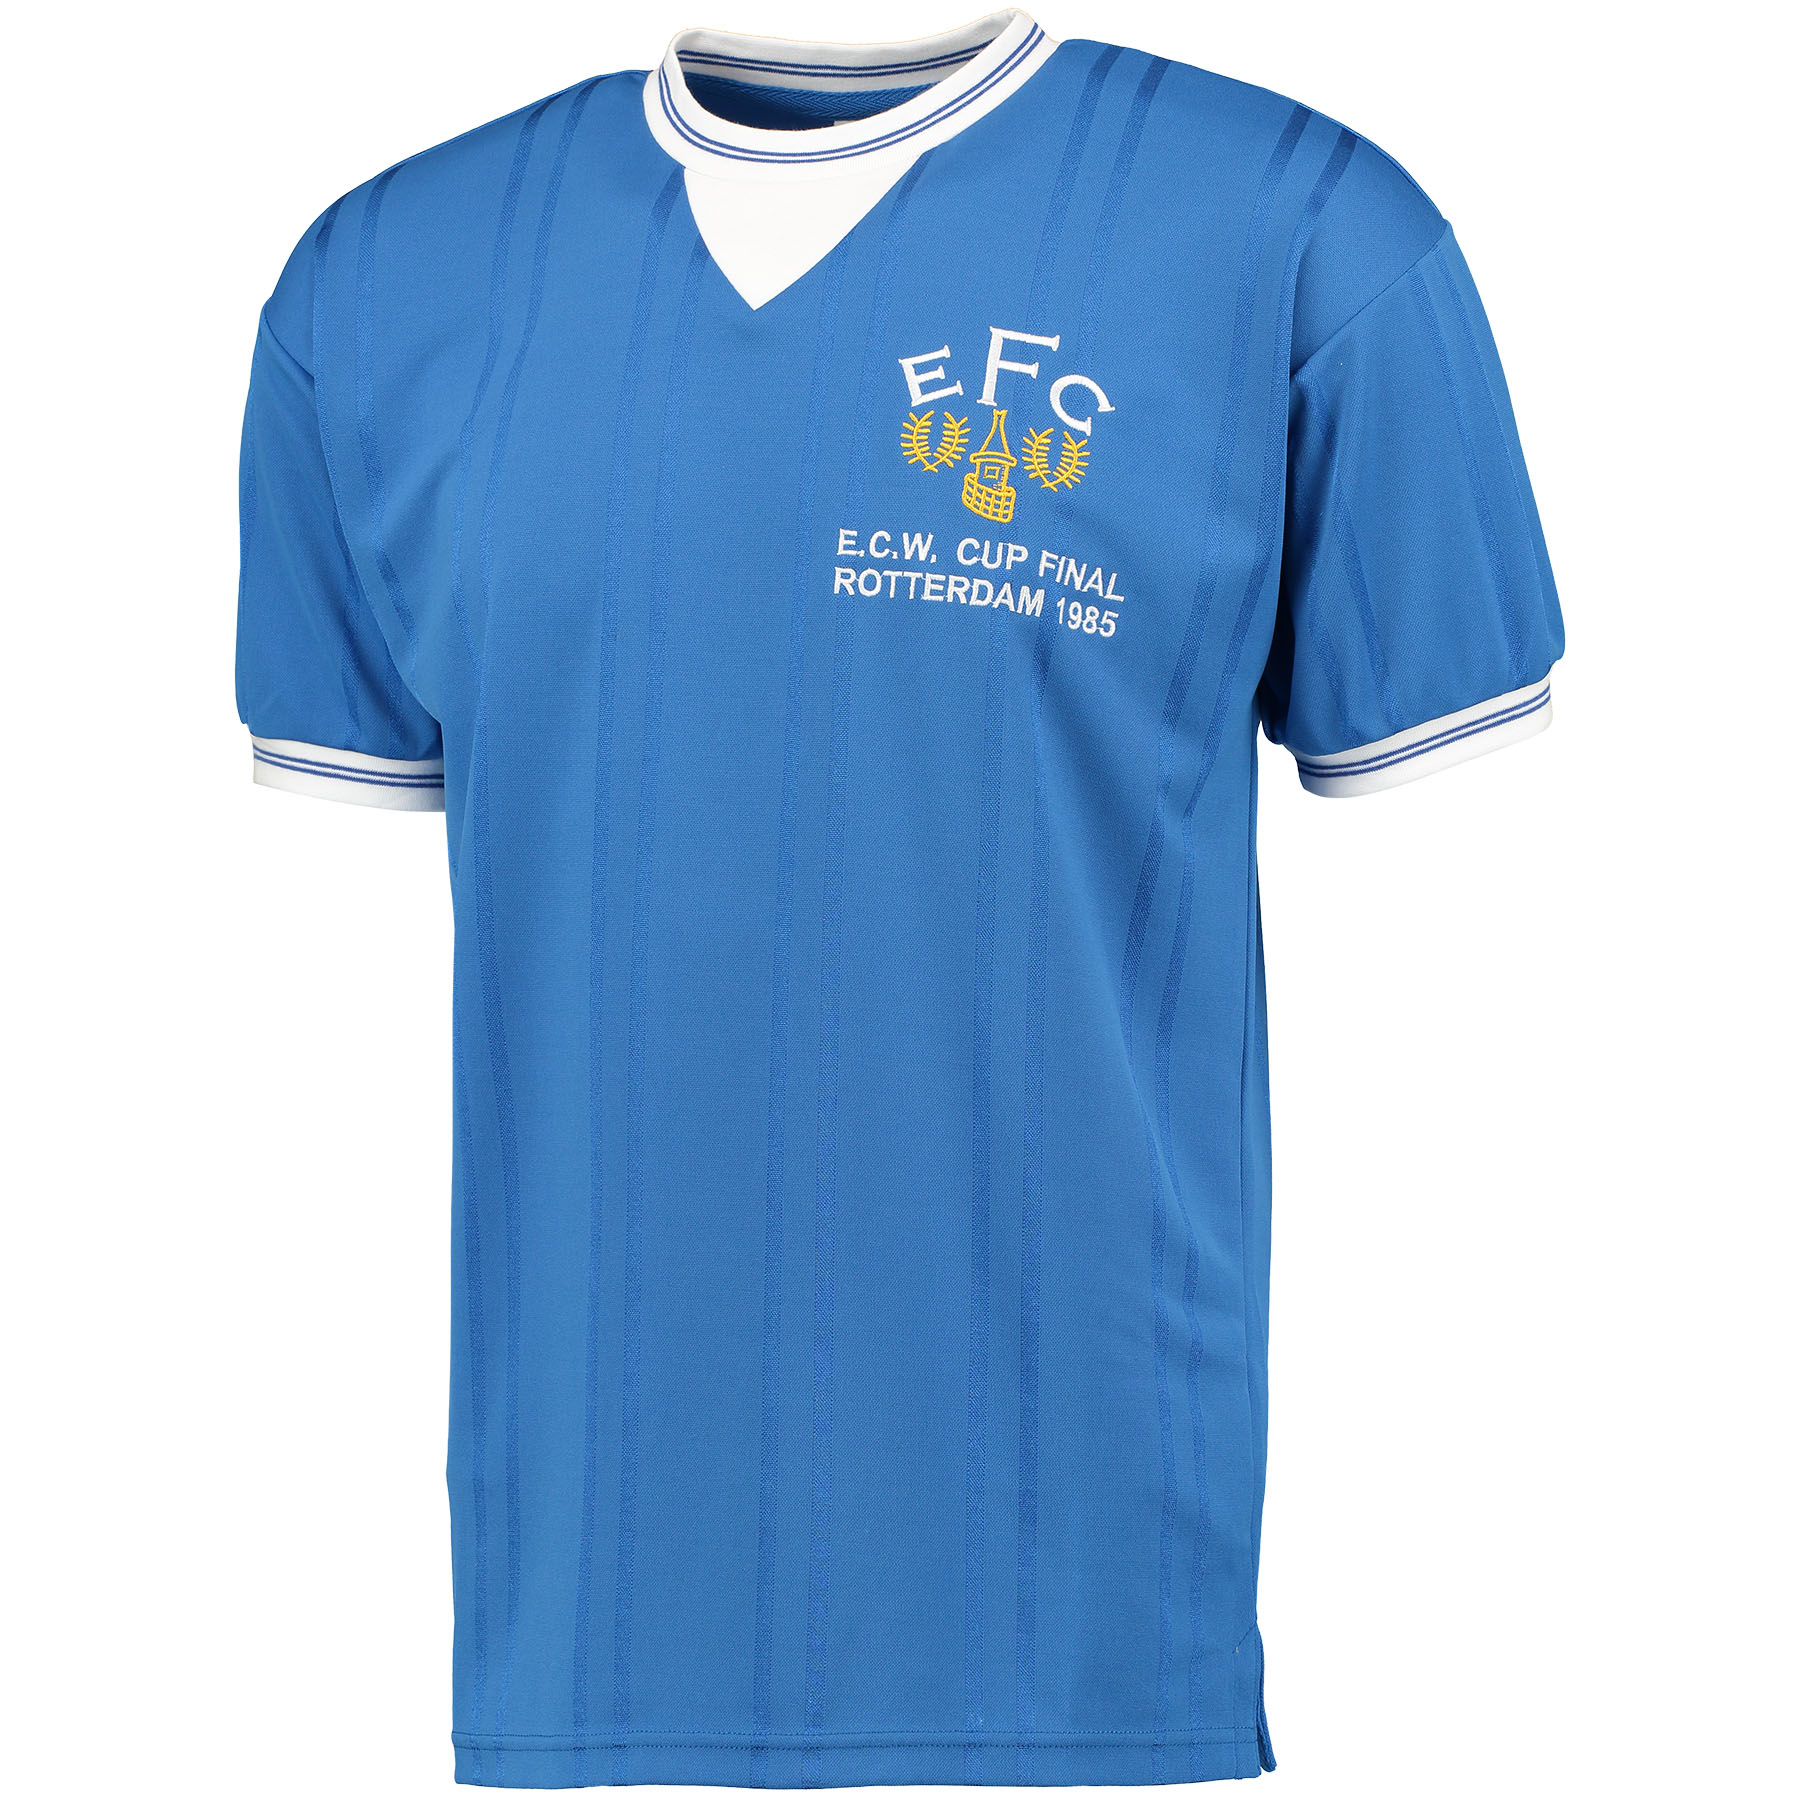 Image of Everton 1985 European Cup Winners Cup Final Shirt